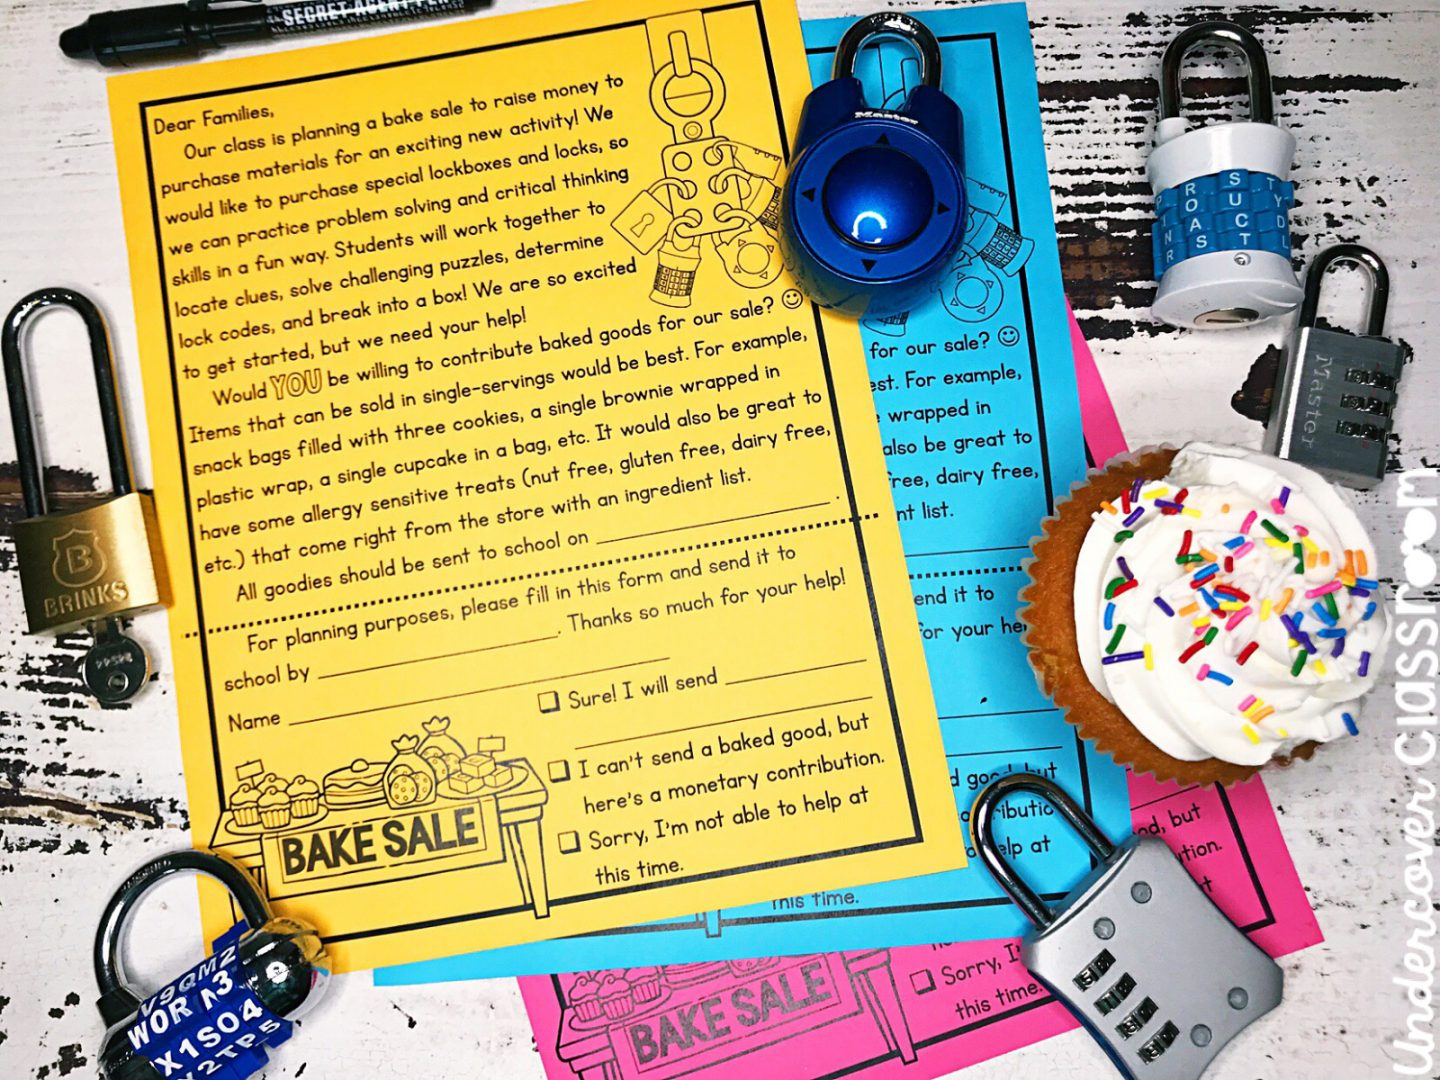 Get free locks for your lockbox with this free sample letter for a bake sale.